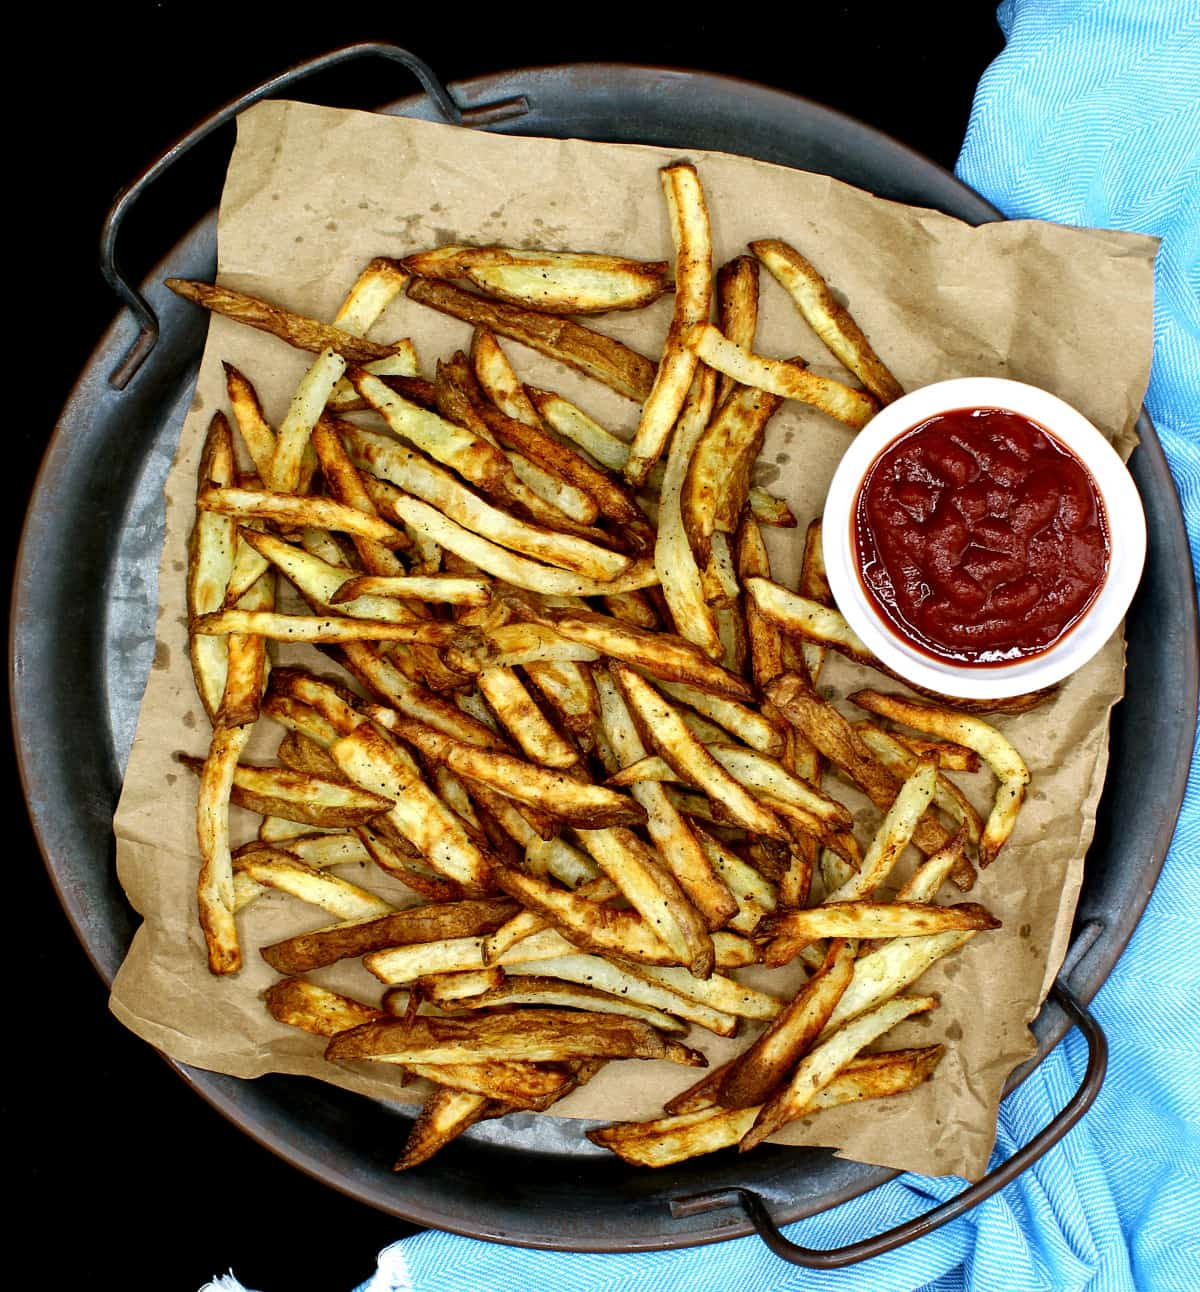 A top shot of air fryer French fries, golden and crispy, on brown paper. These are made with very little oil or no oil. Next to the fries is a white ceramic bowl with tomato ketchup.